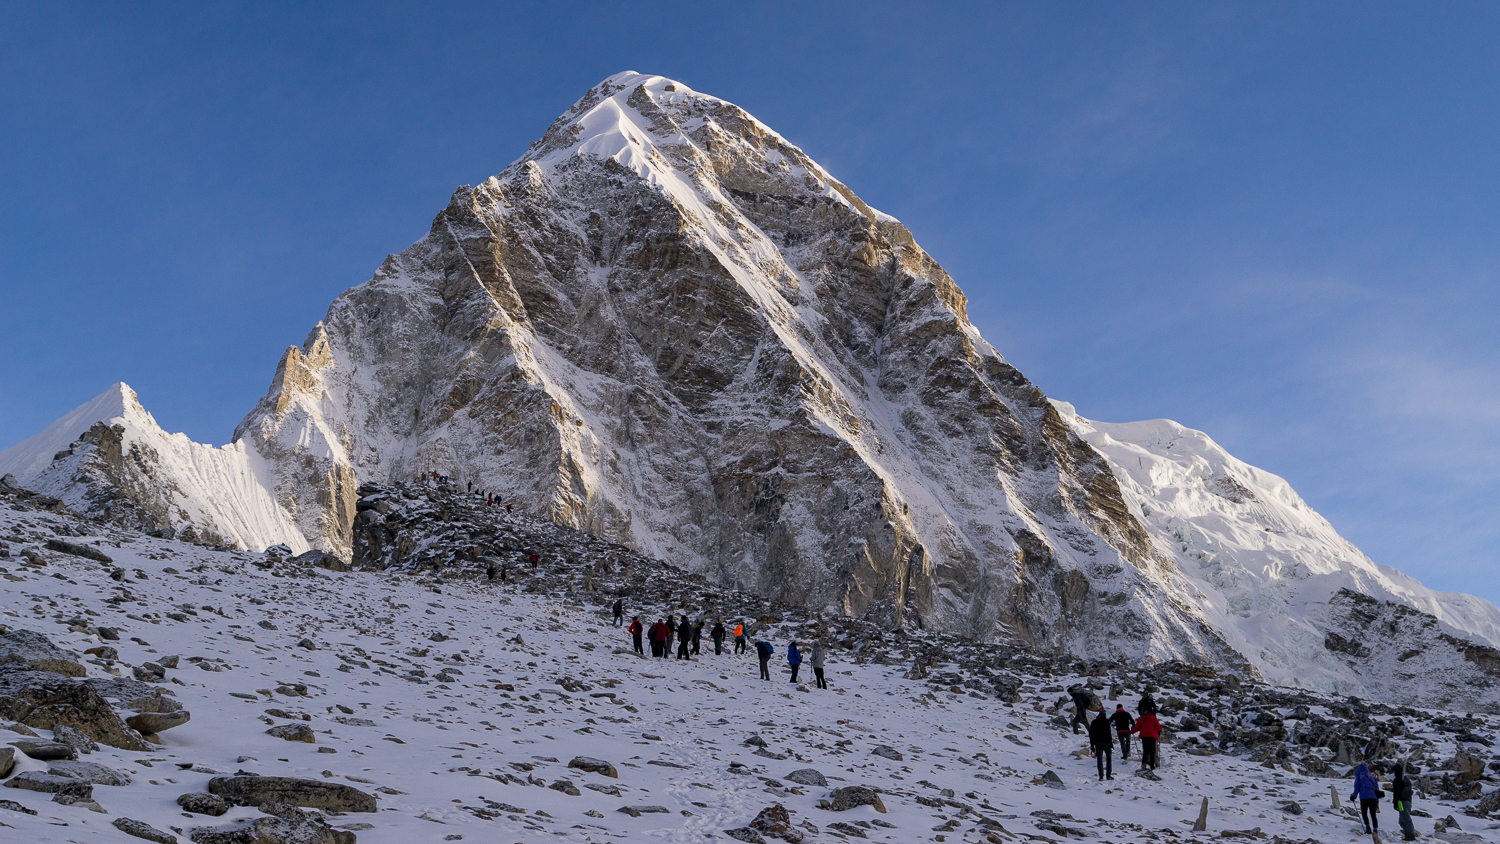 Kala Patthar Summit and Pumori